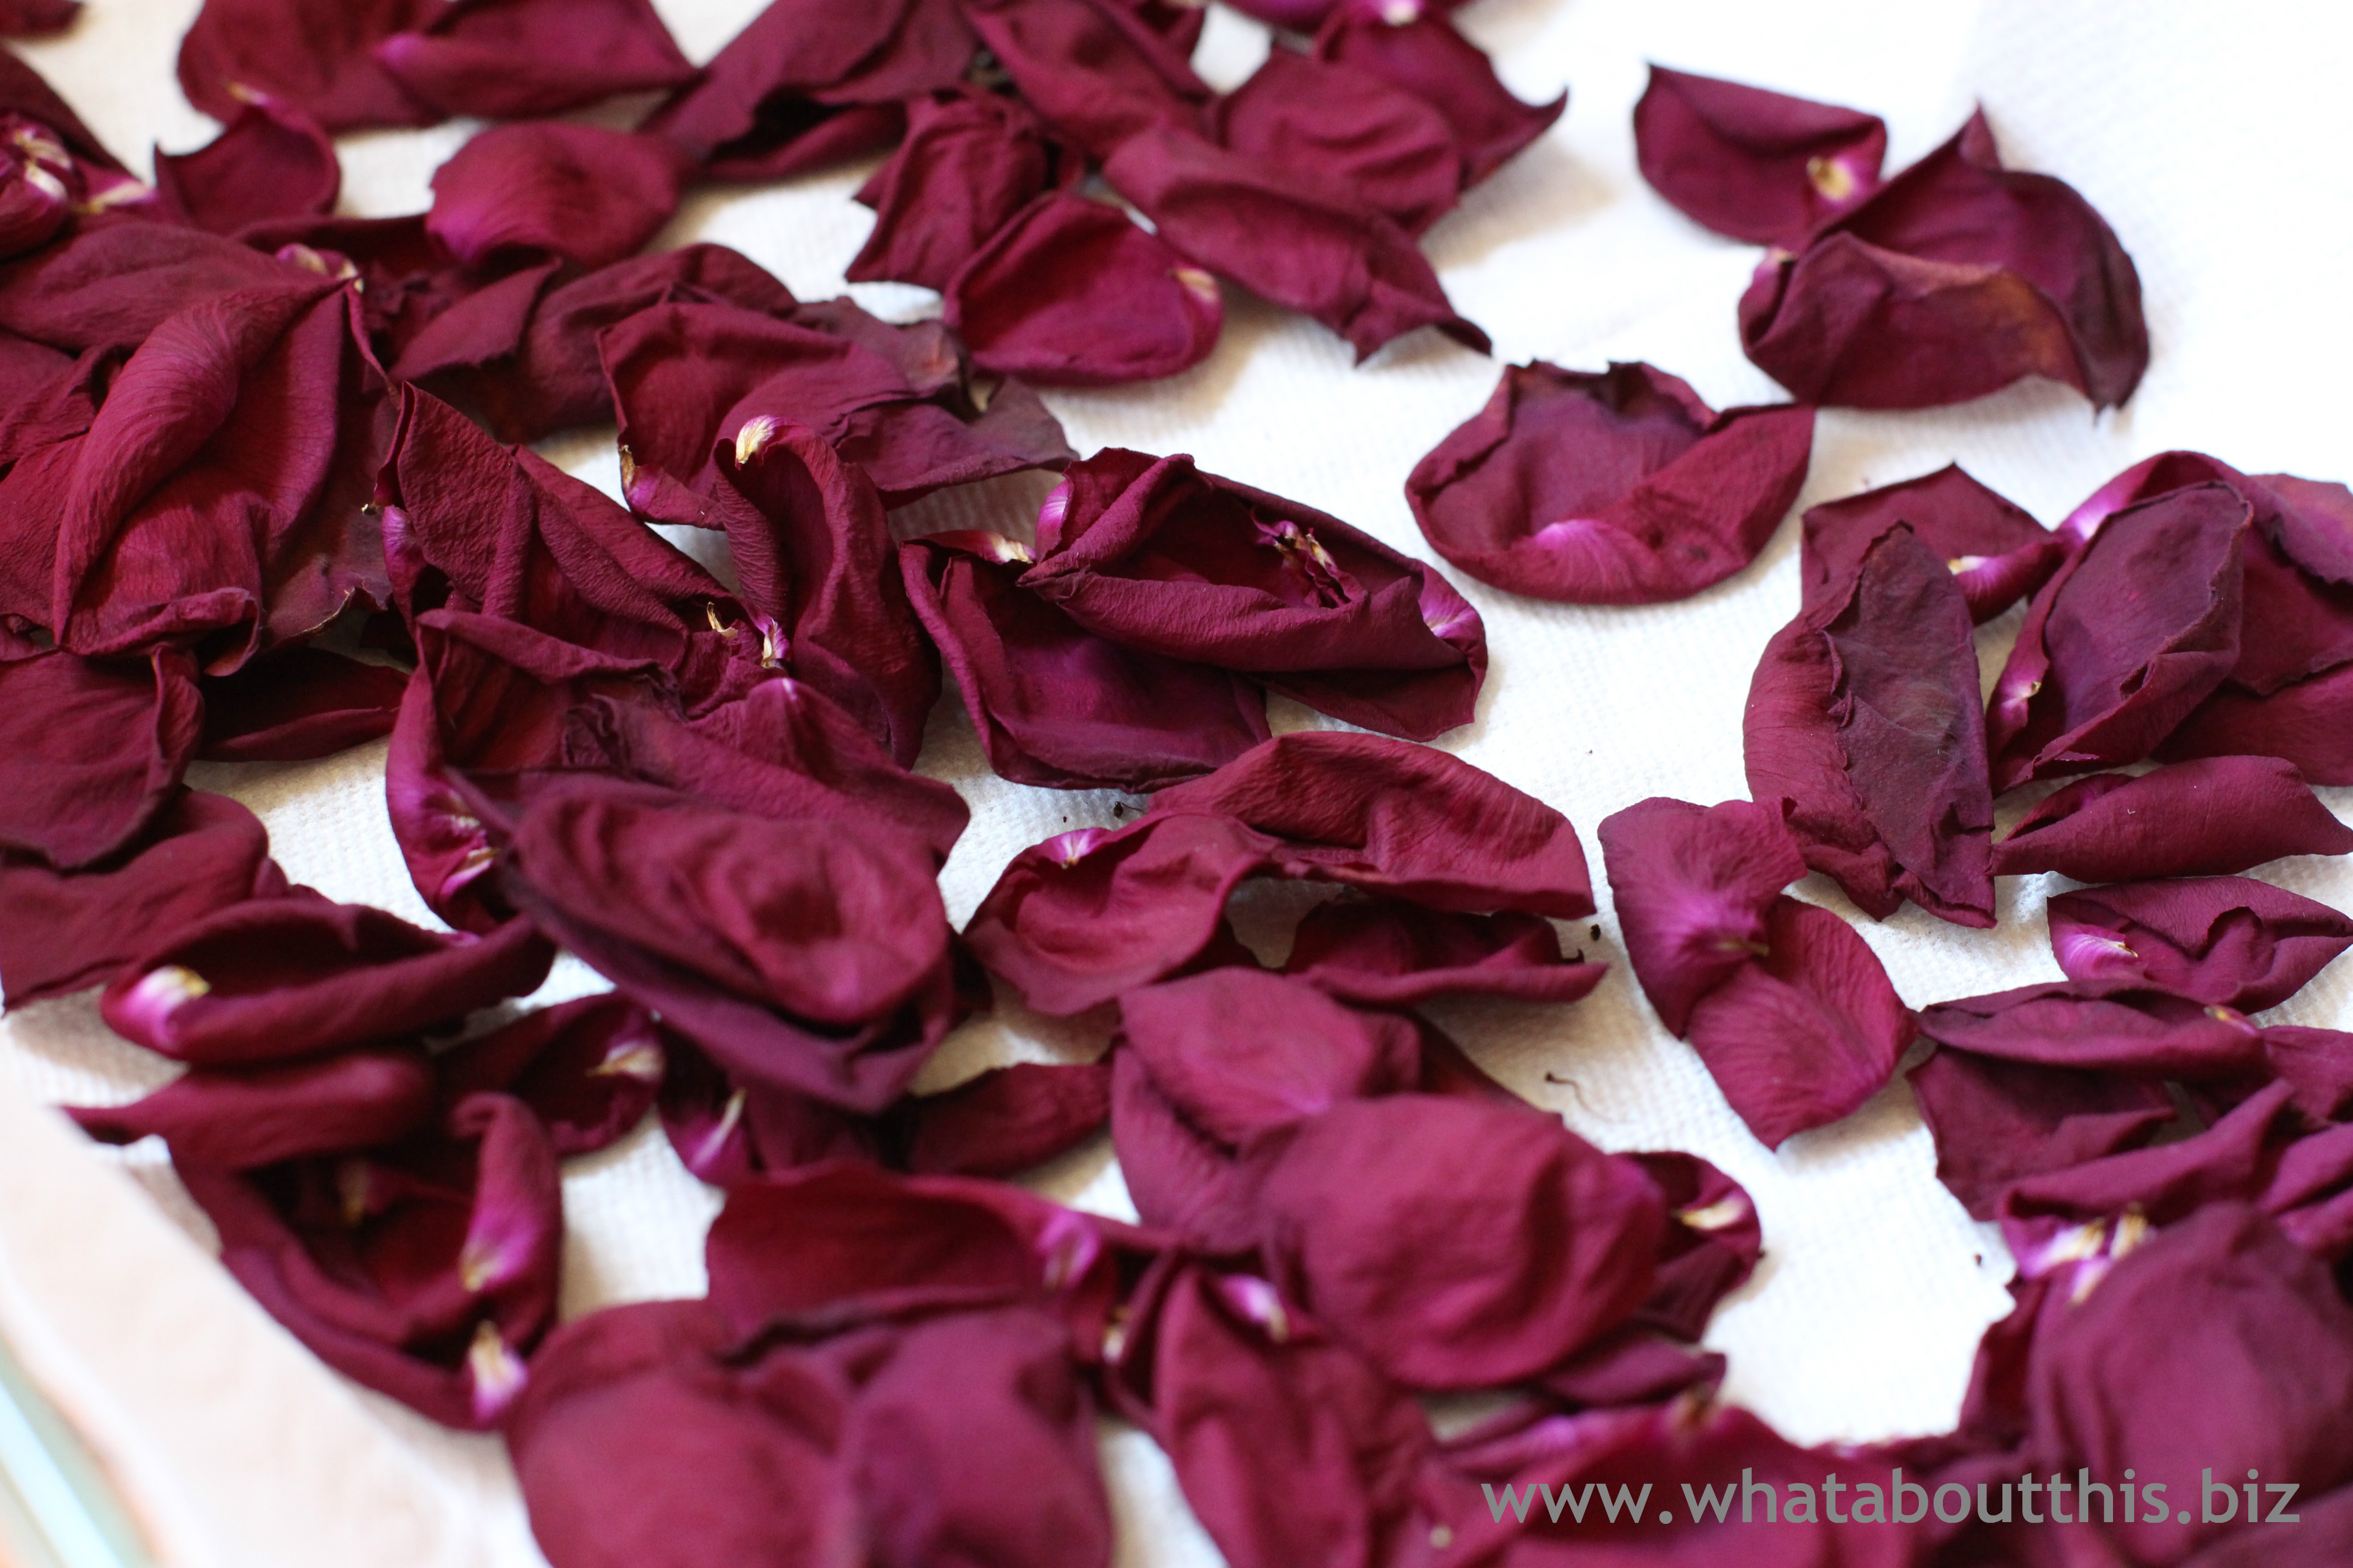 homemade potpourri with rose petals and lavender what about this